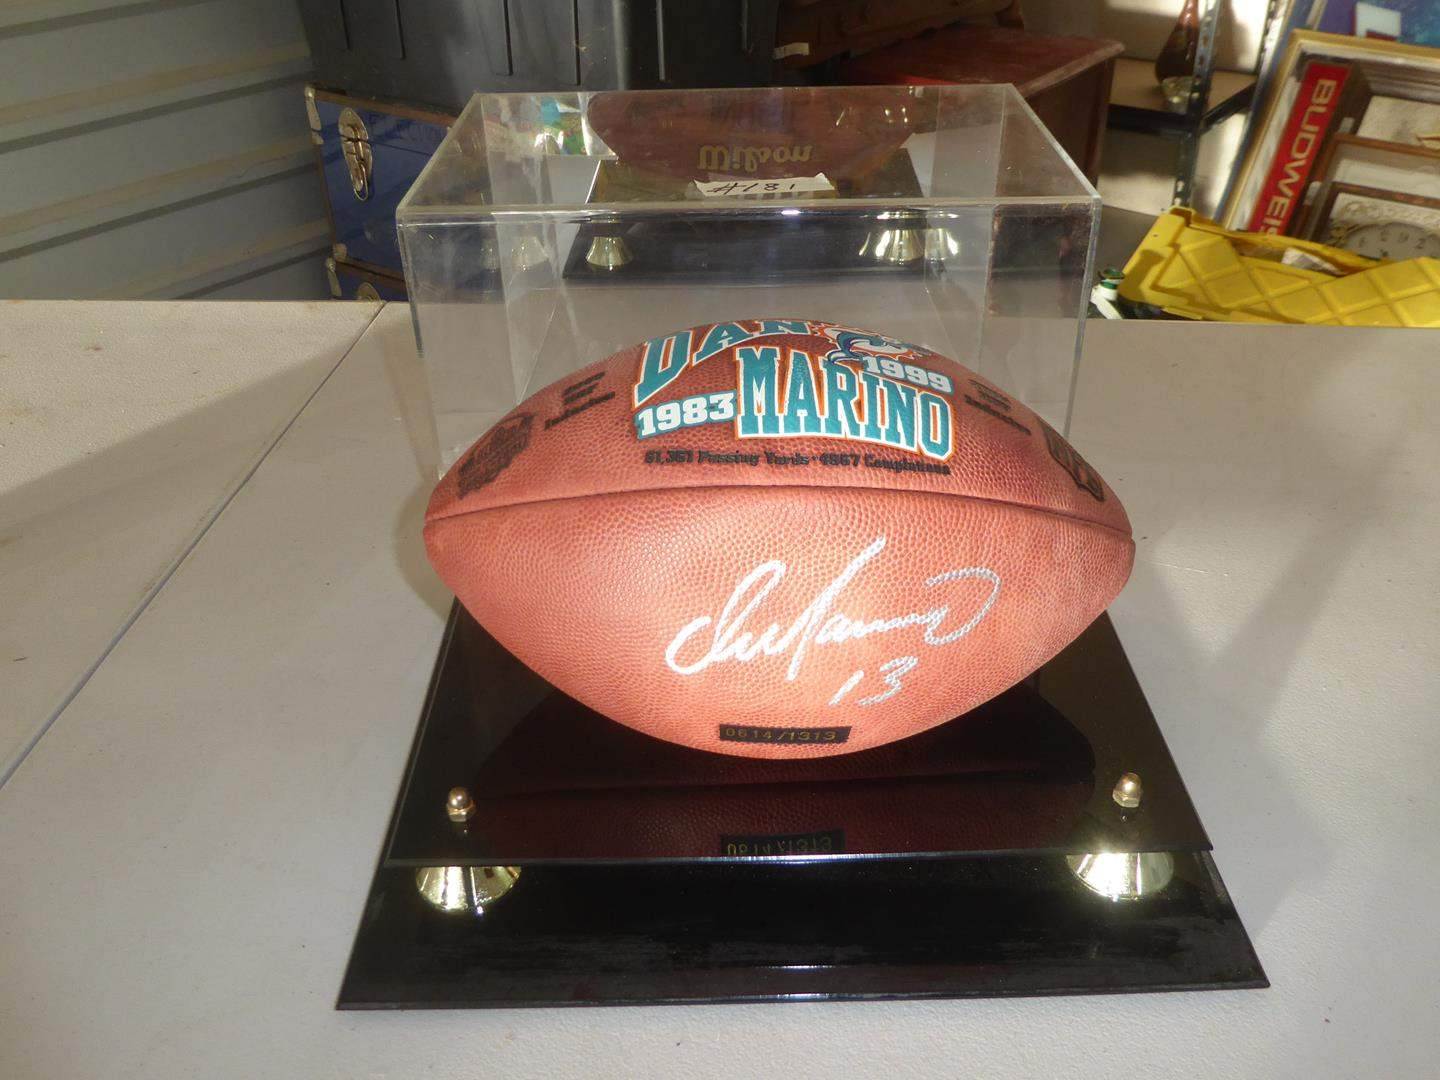 Lot # 181 - Vintage Autographed Numbered Dan Marino Football Memorabilia in Case w/Certificate of Authenticity (main image)